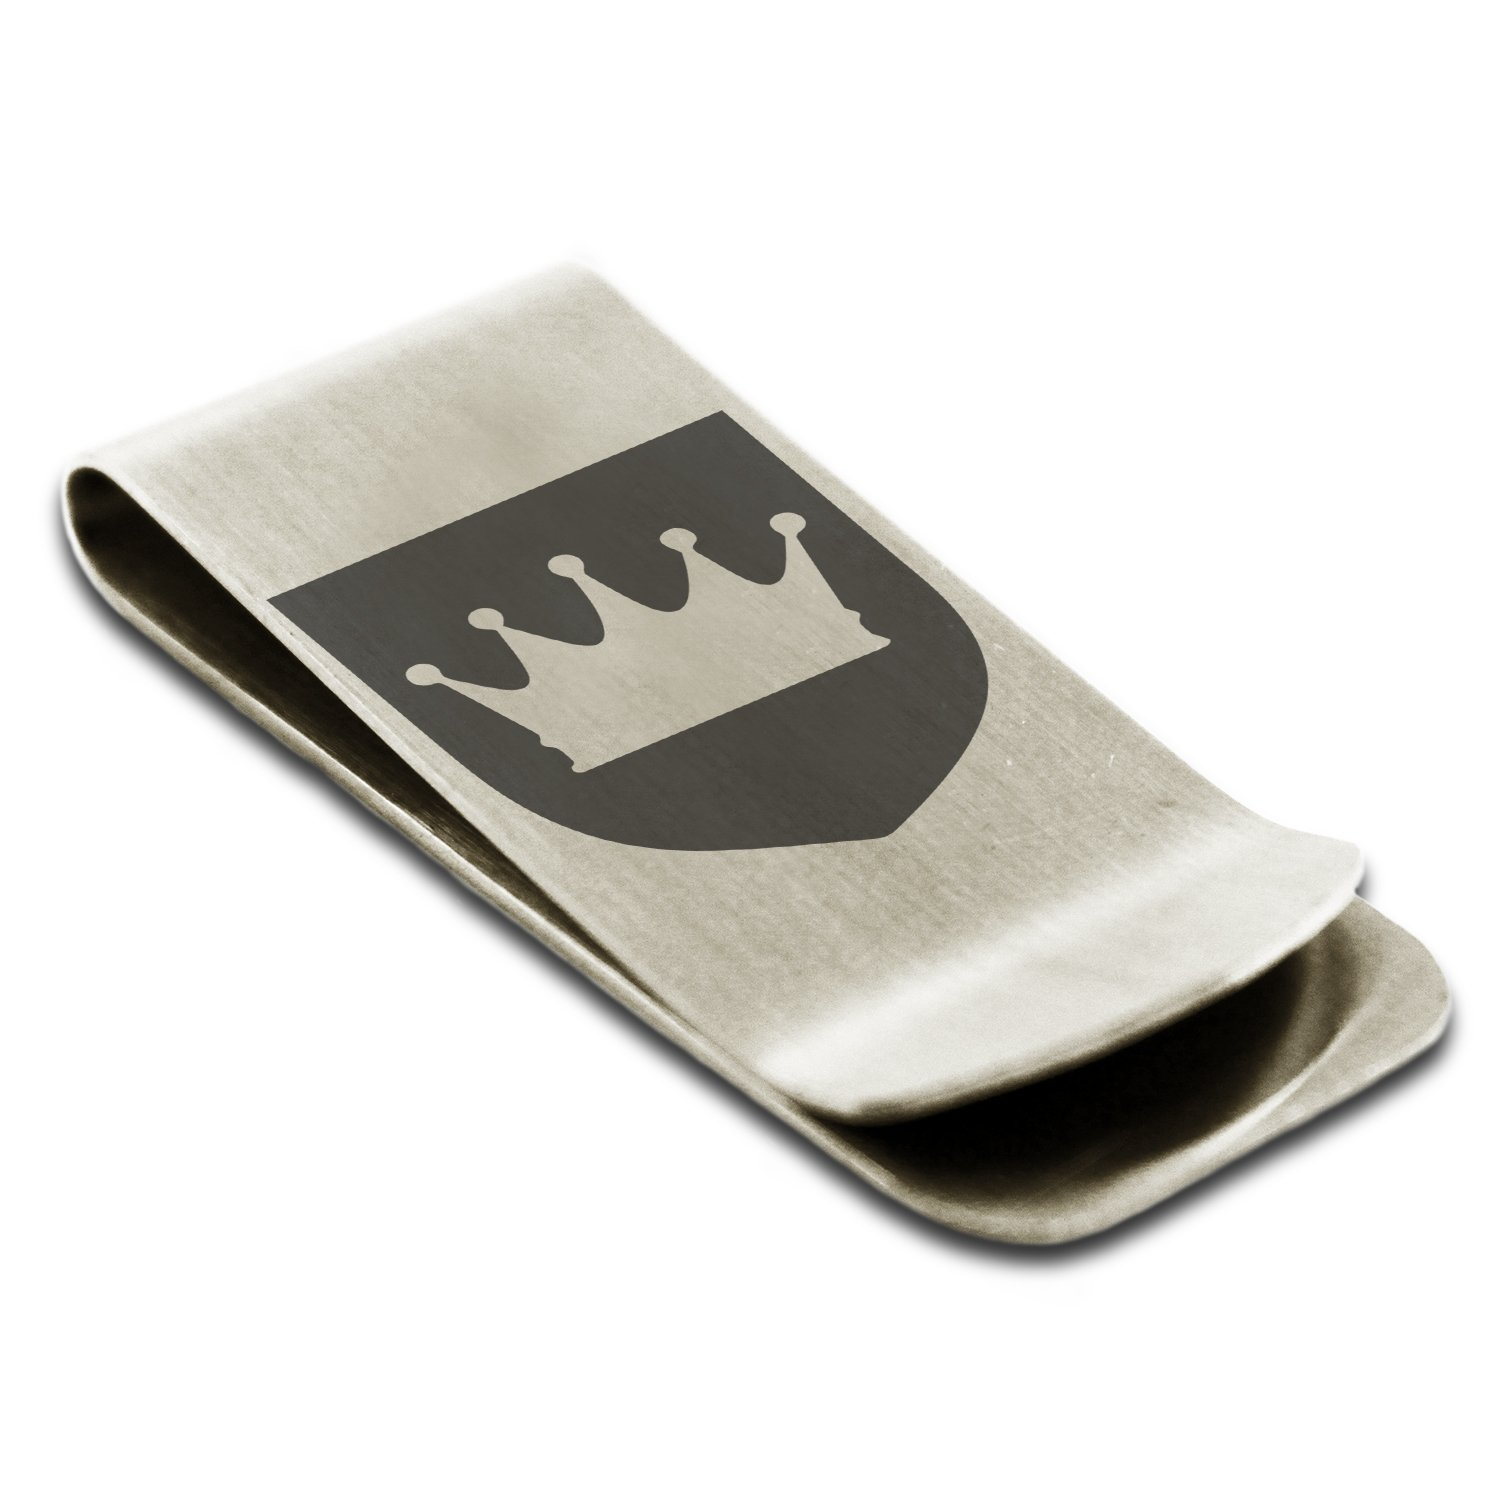 Stainless Steel Crown Royal Coat of Arms Shield Symbol Engraved Money Clip Credit Card Holder